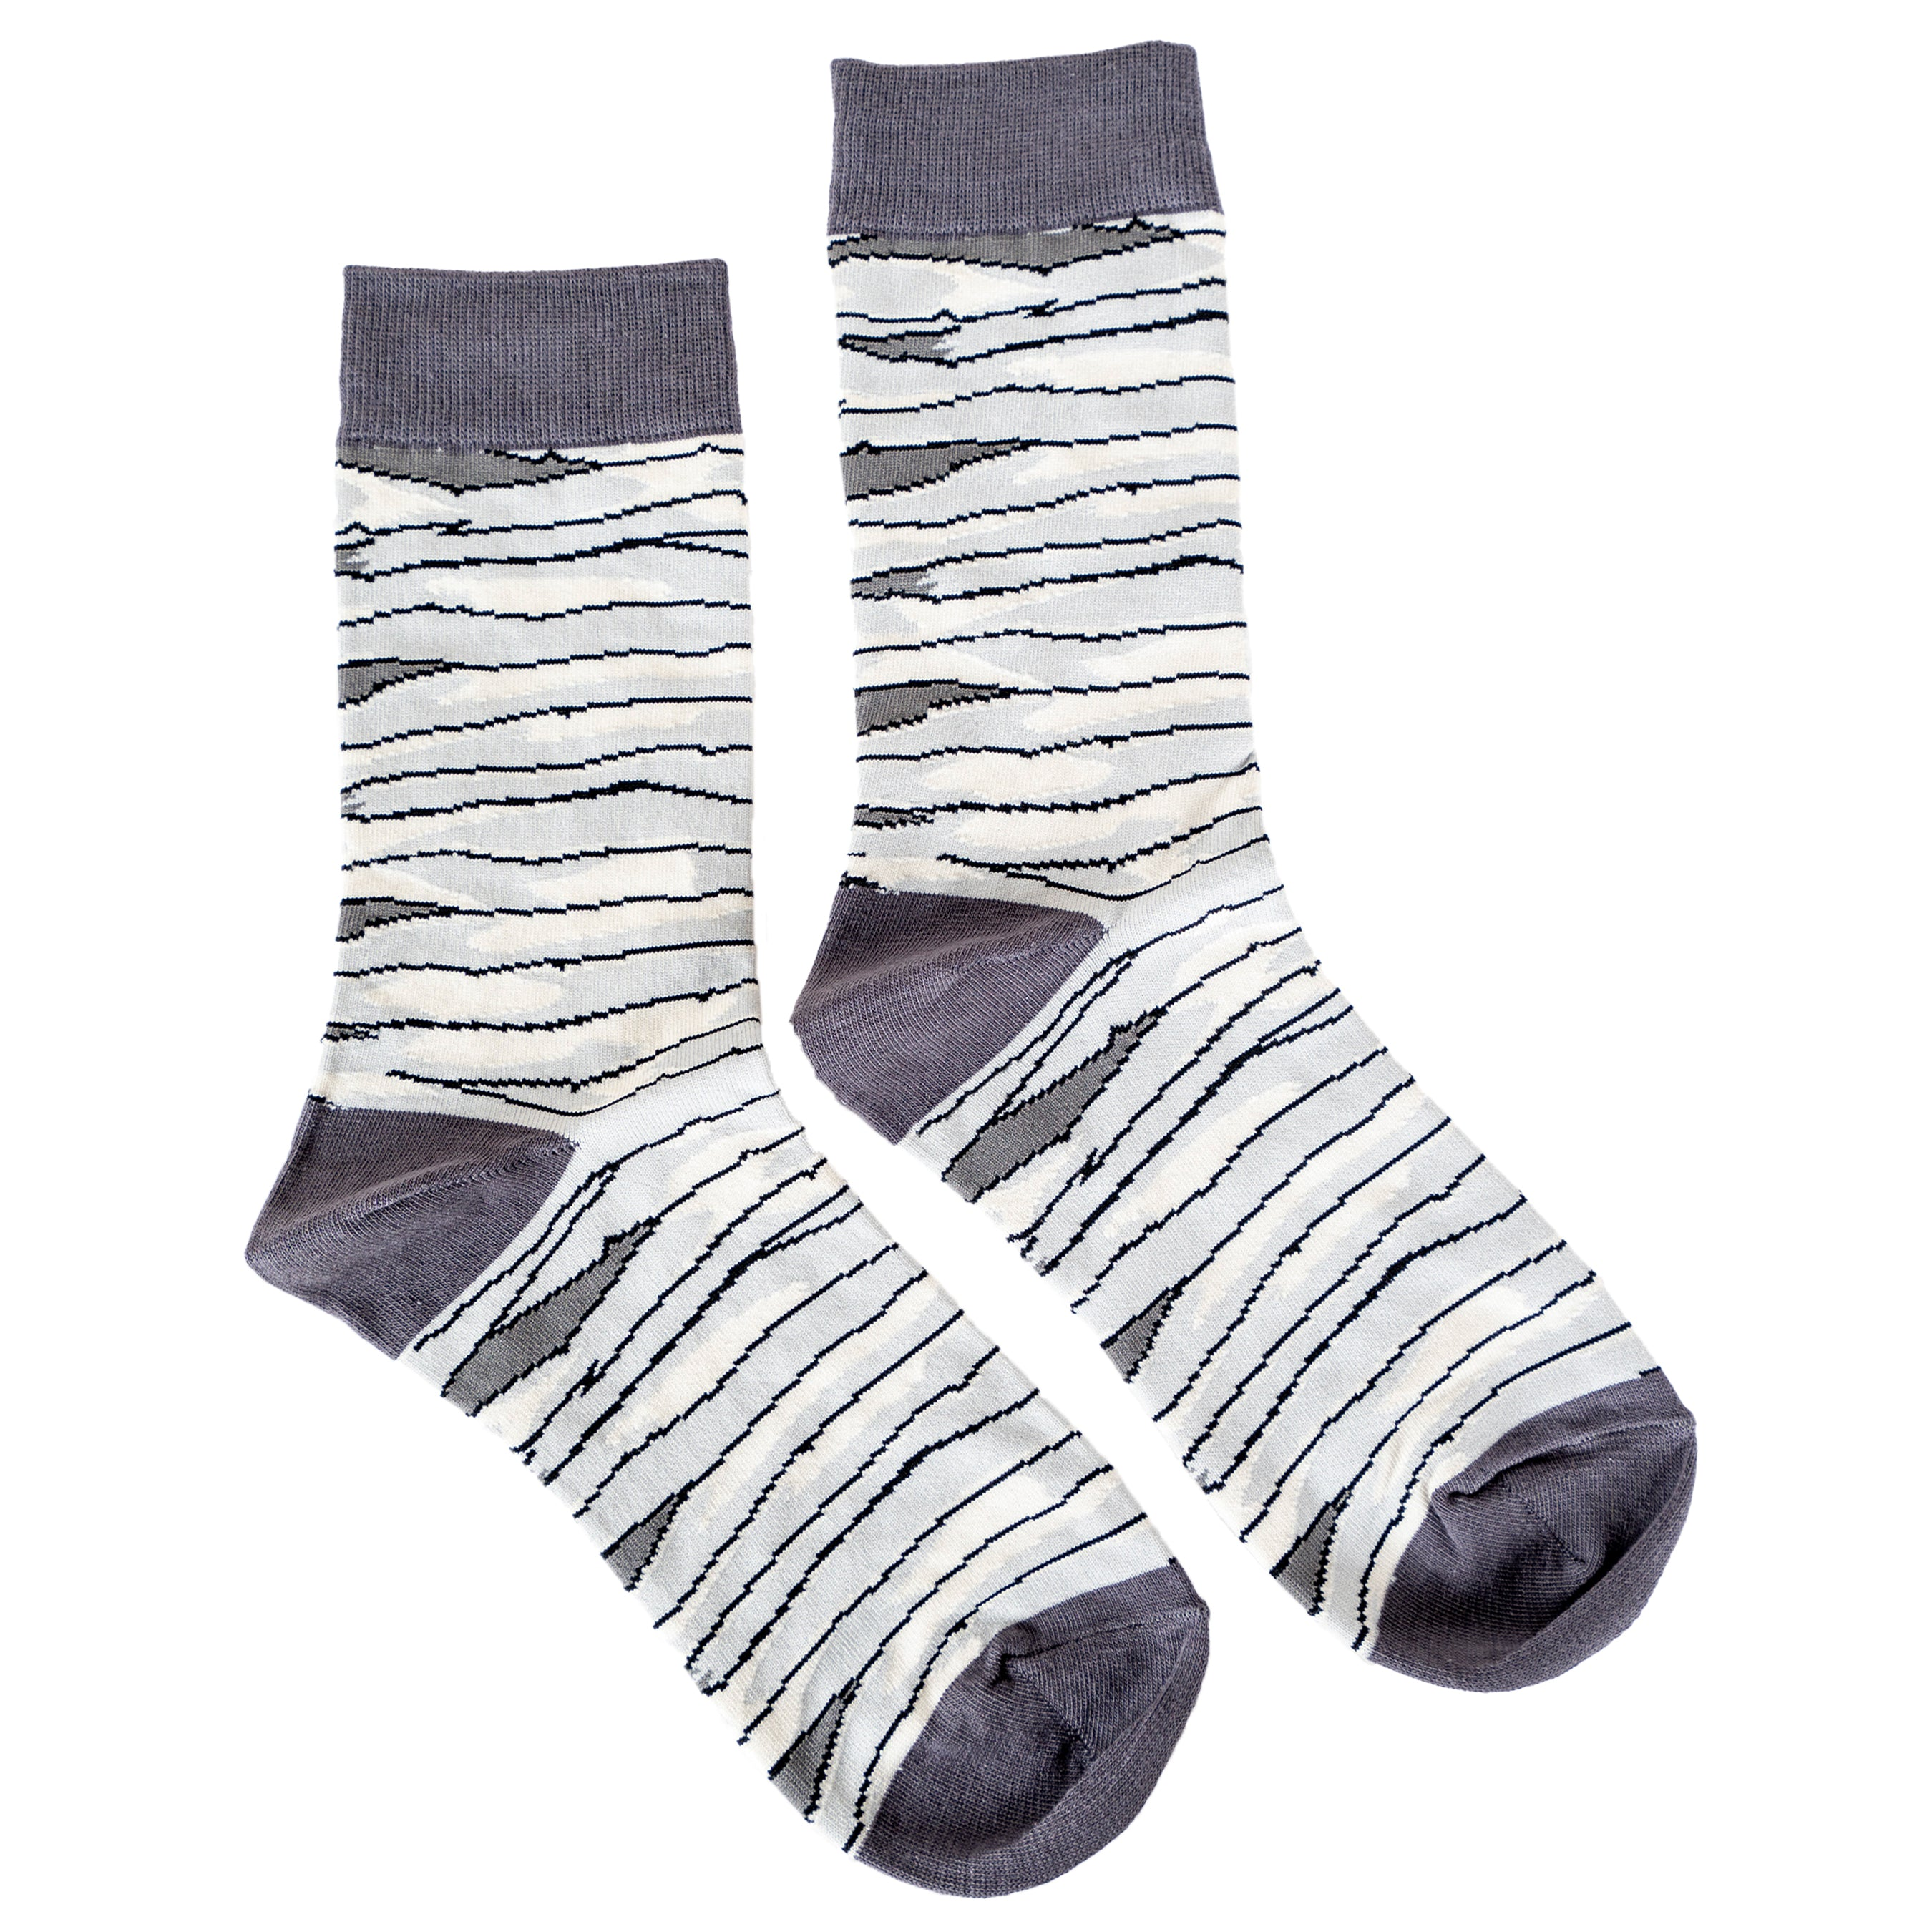 Mummy Wrap Socks